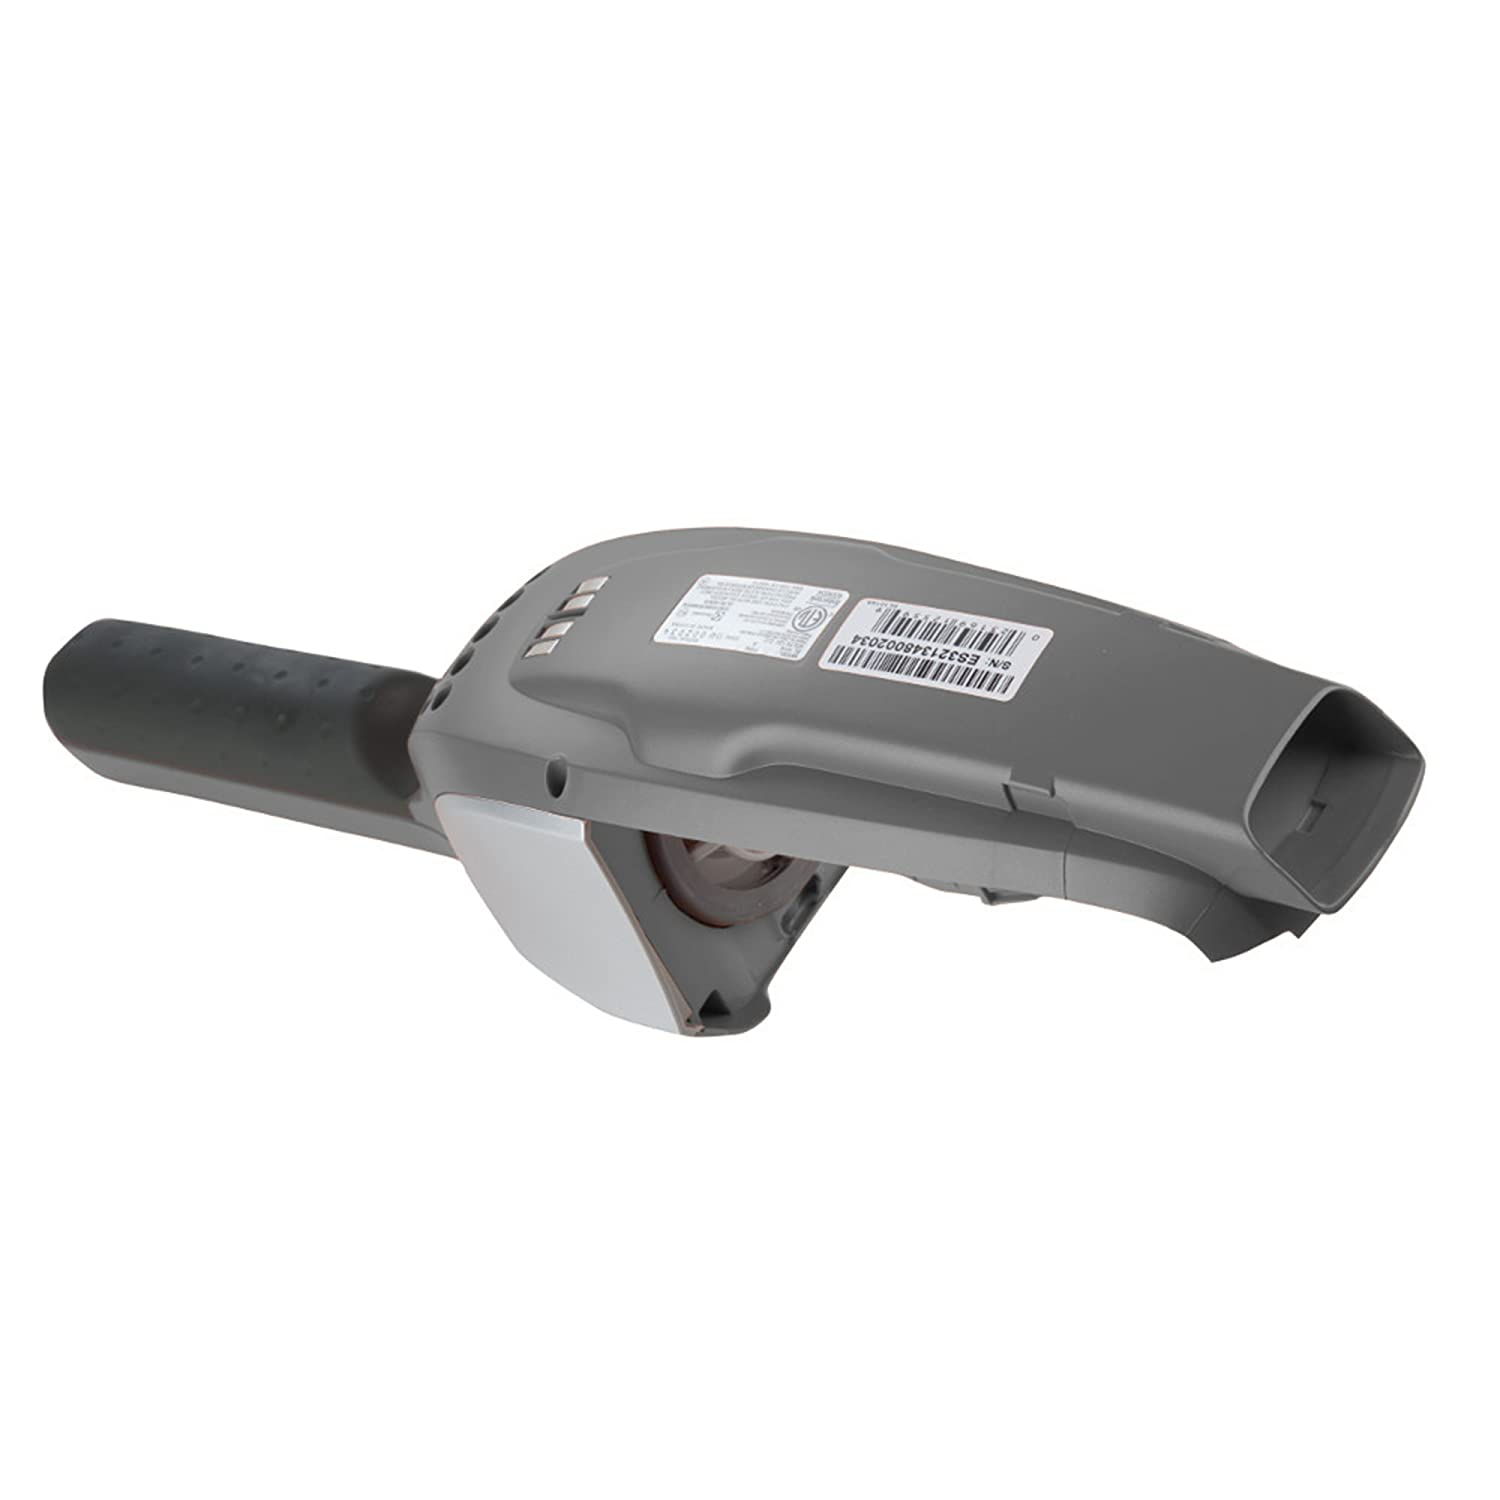 What is the best handheld vacuum cleaner reference com - Amazon Com Replacement Battery Pack For Electrolux Ergorapido 2 In 1 Stick And Handheld Vacuum El1016a